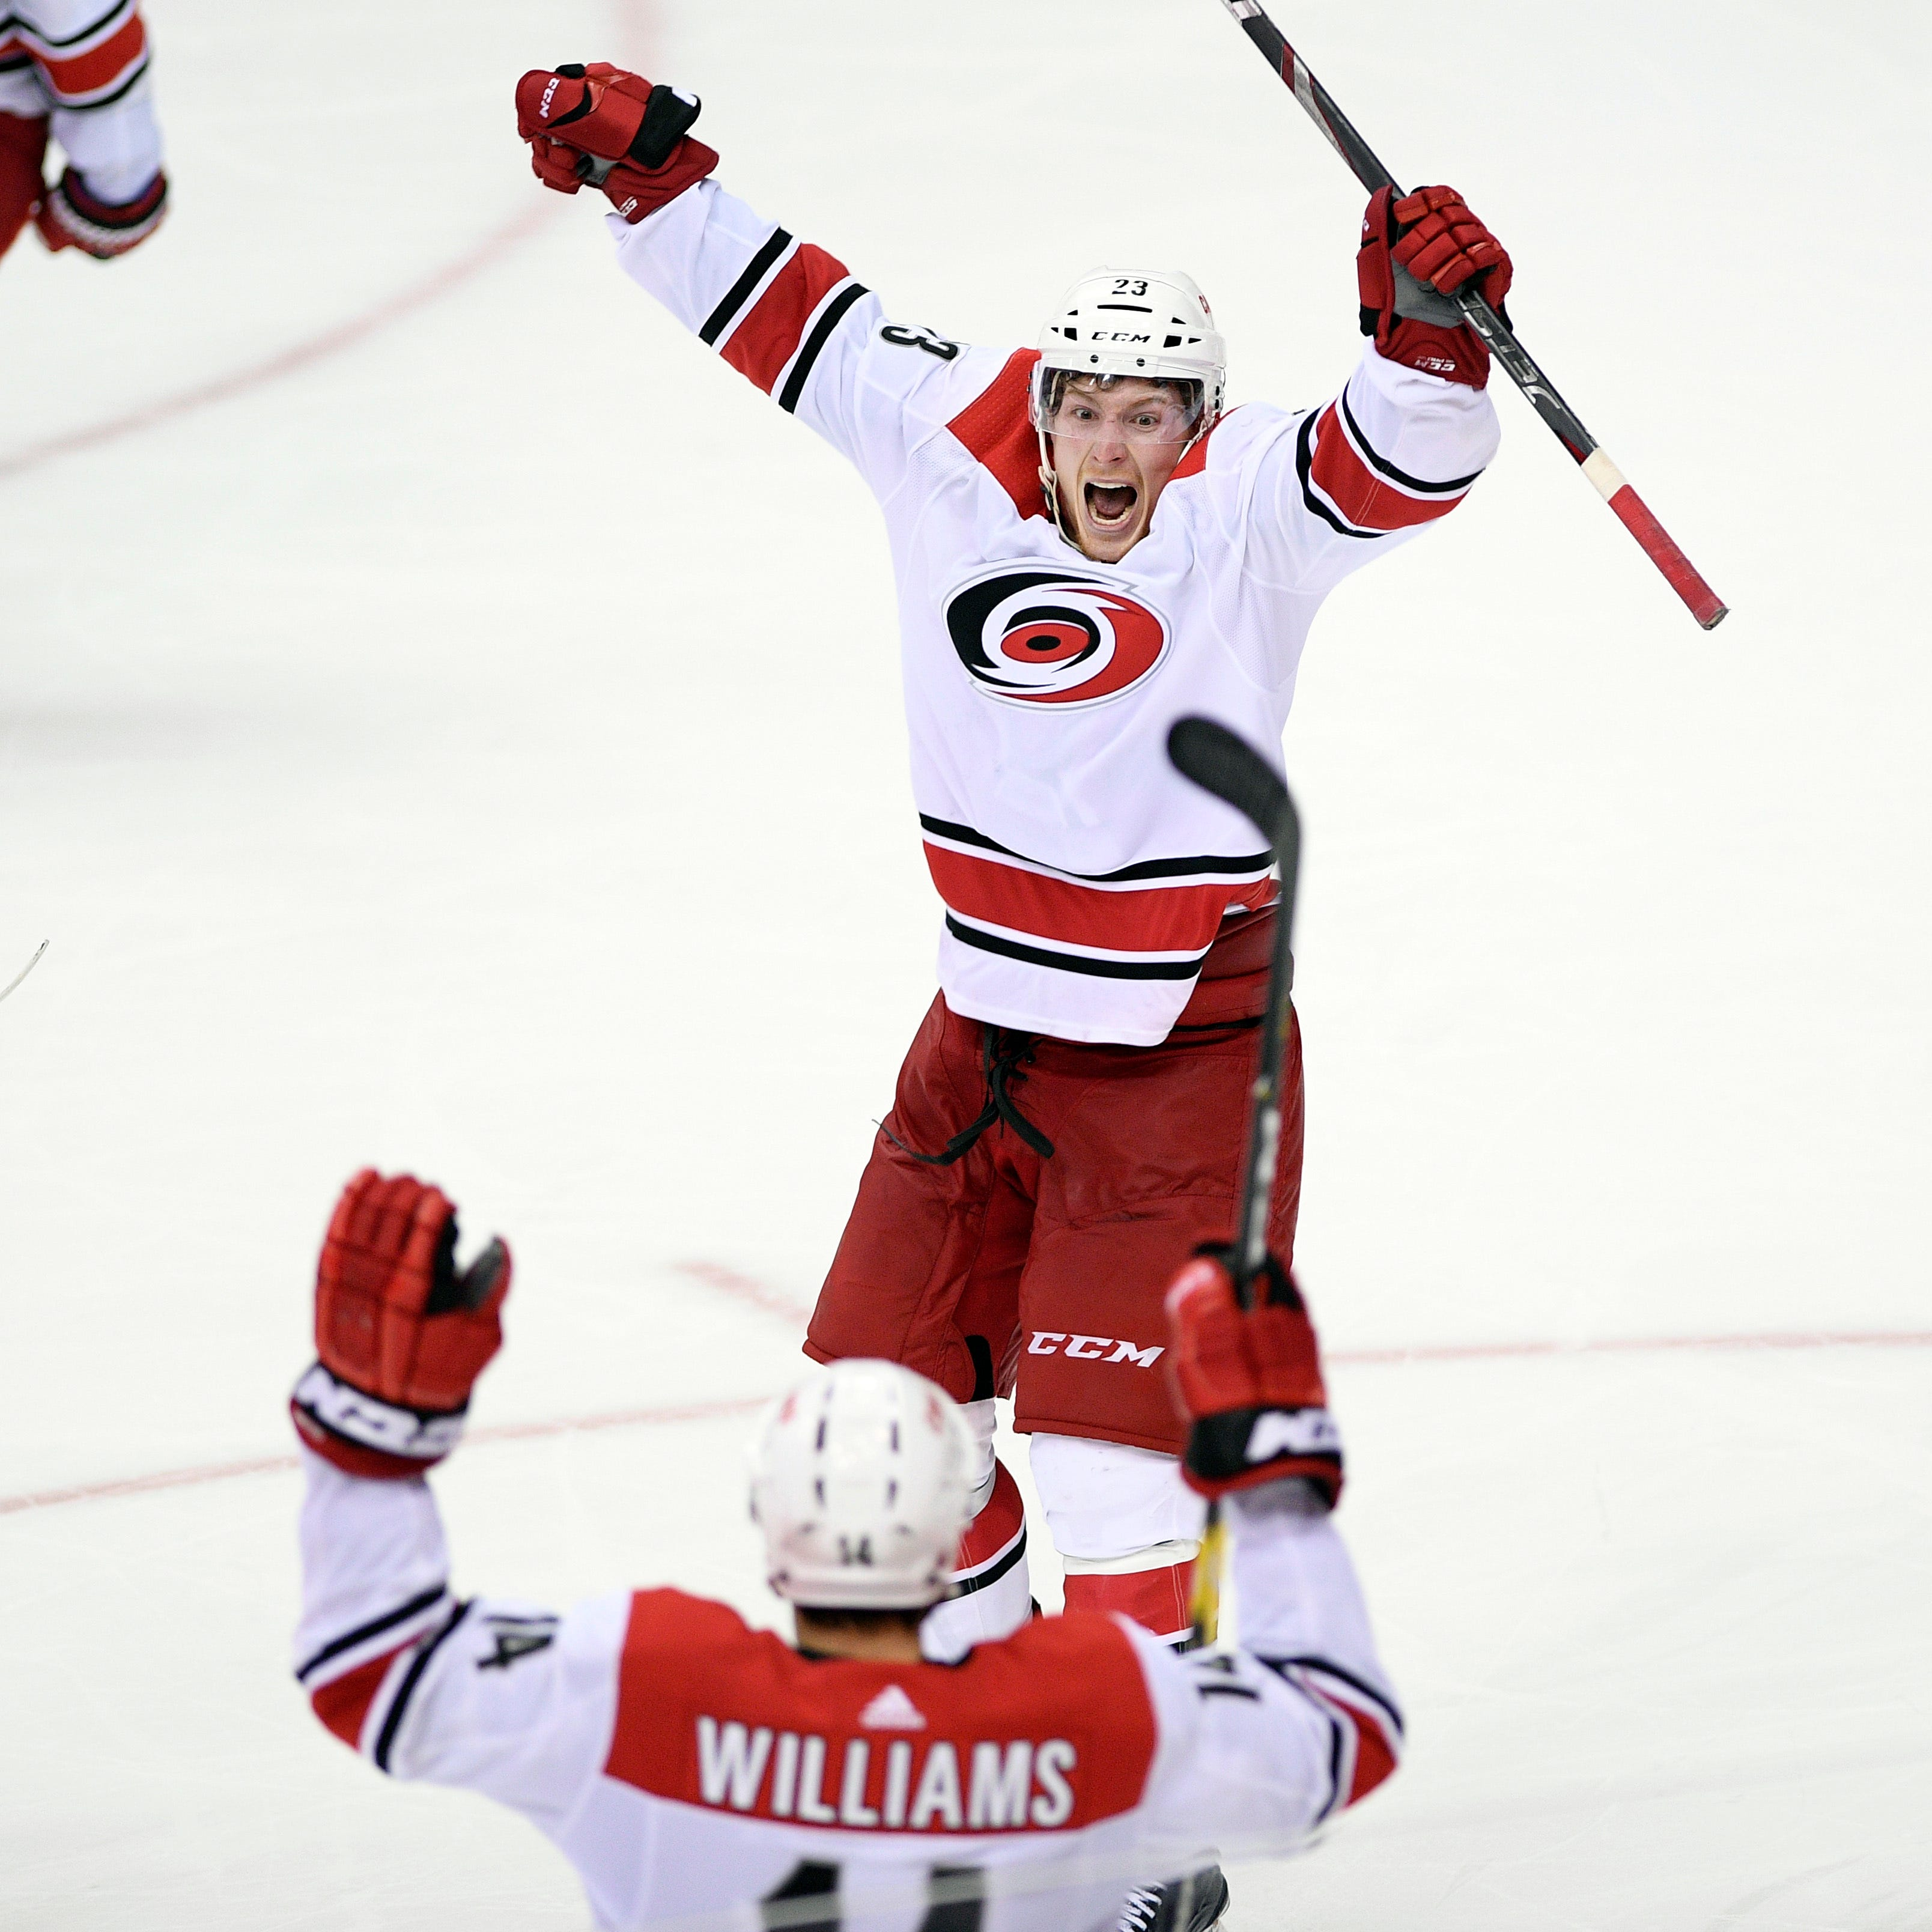 Wednesday's NHL playoffs: Hurricanes stun Capitals in double OT in Game 7